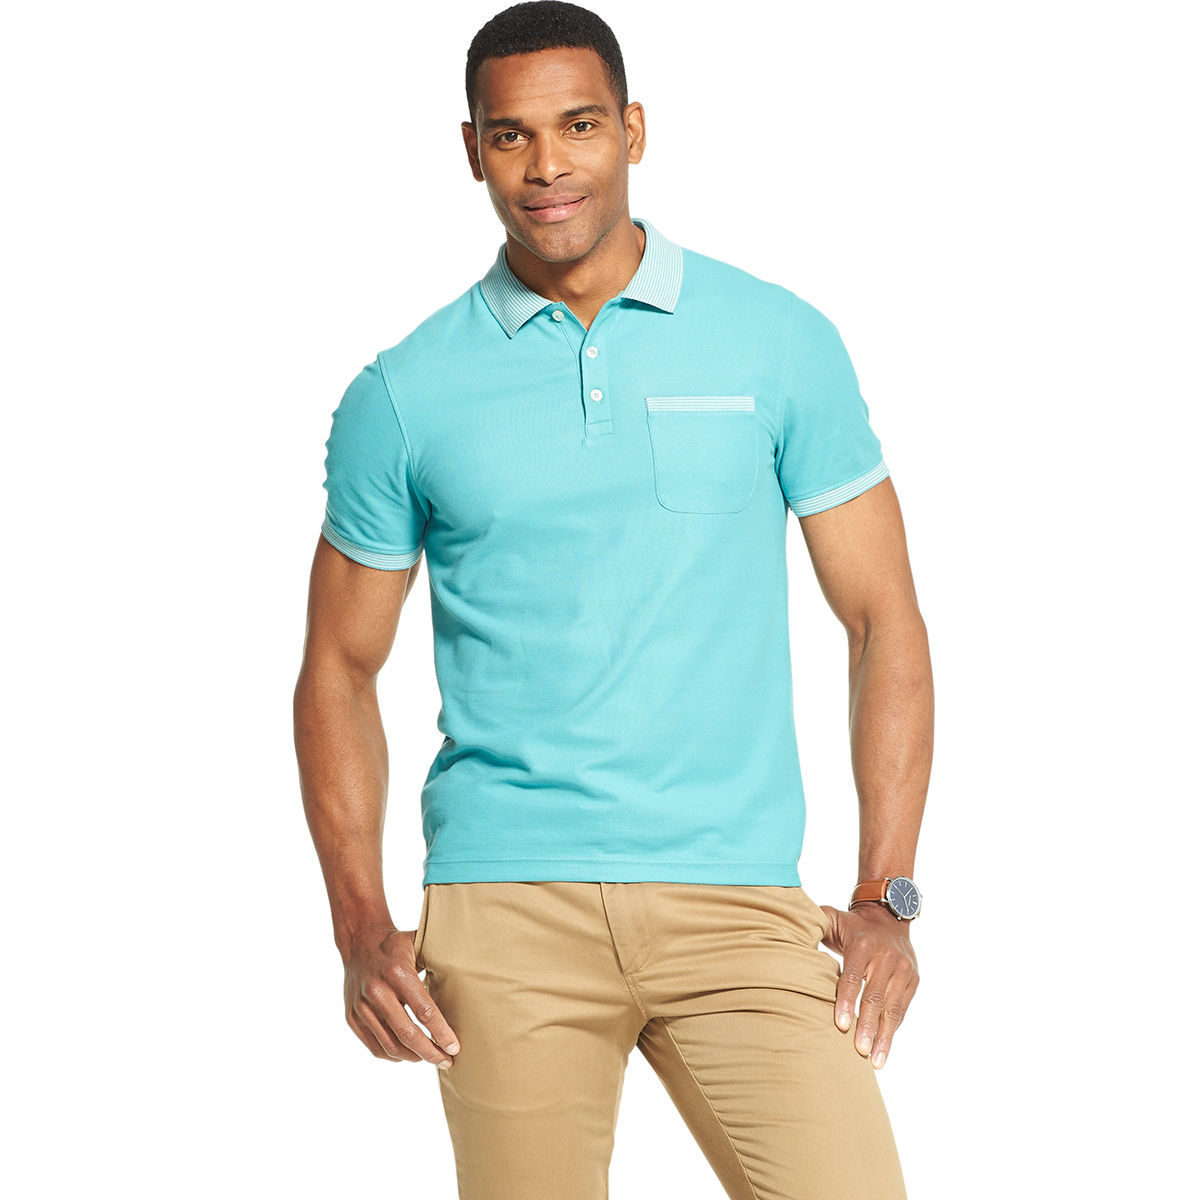 Van Heusen Men's Never Tuck Polo Shirt - Green, M